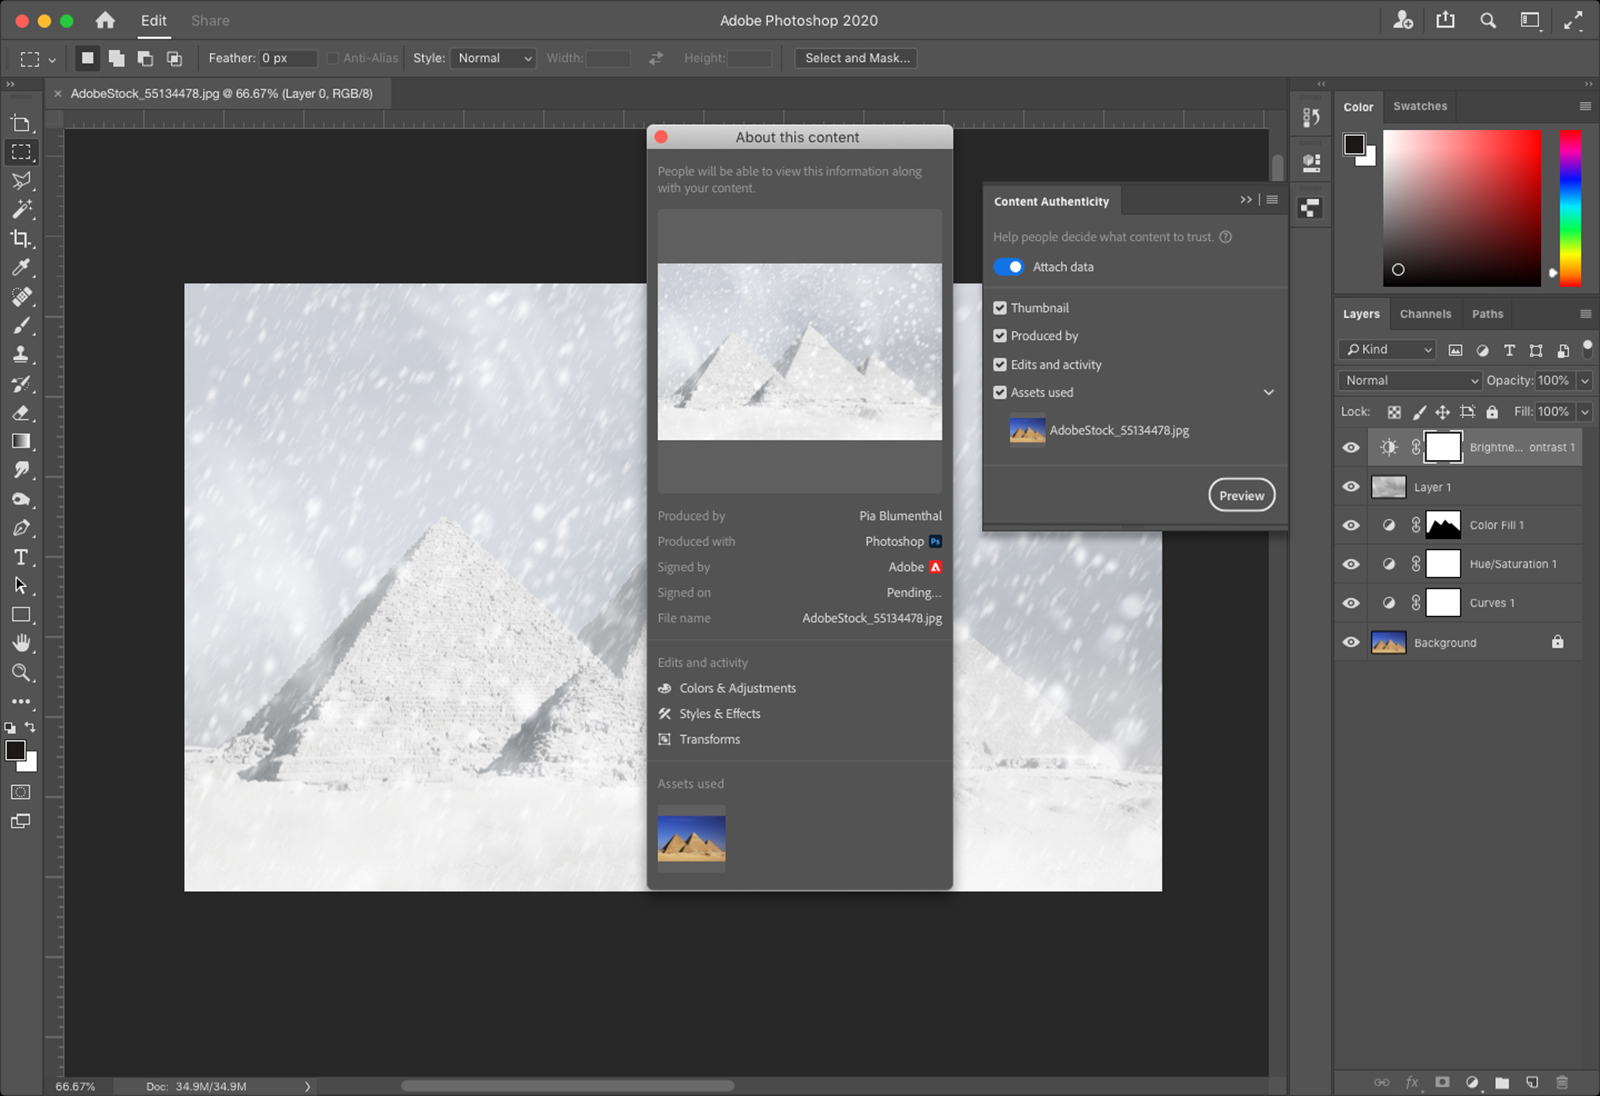 New Photoshop tool could help fight fake images